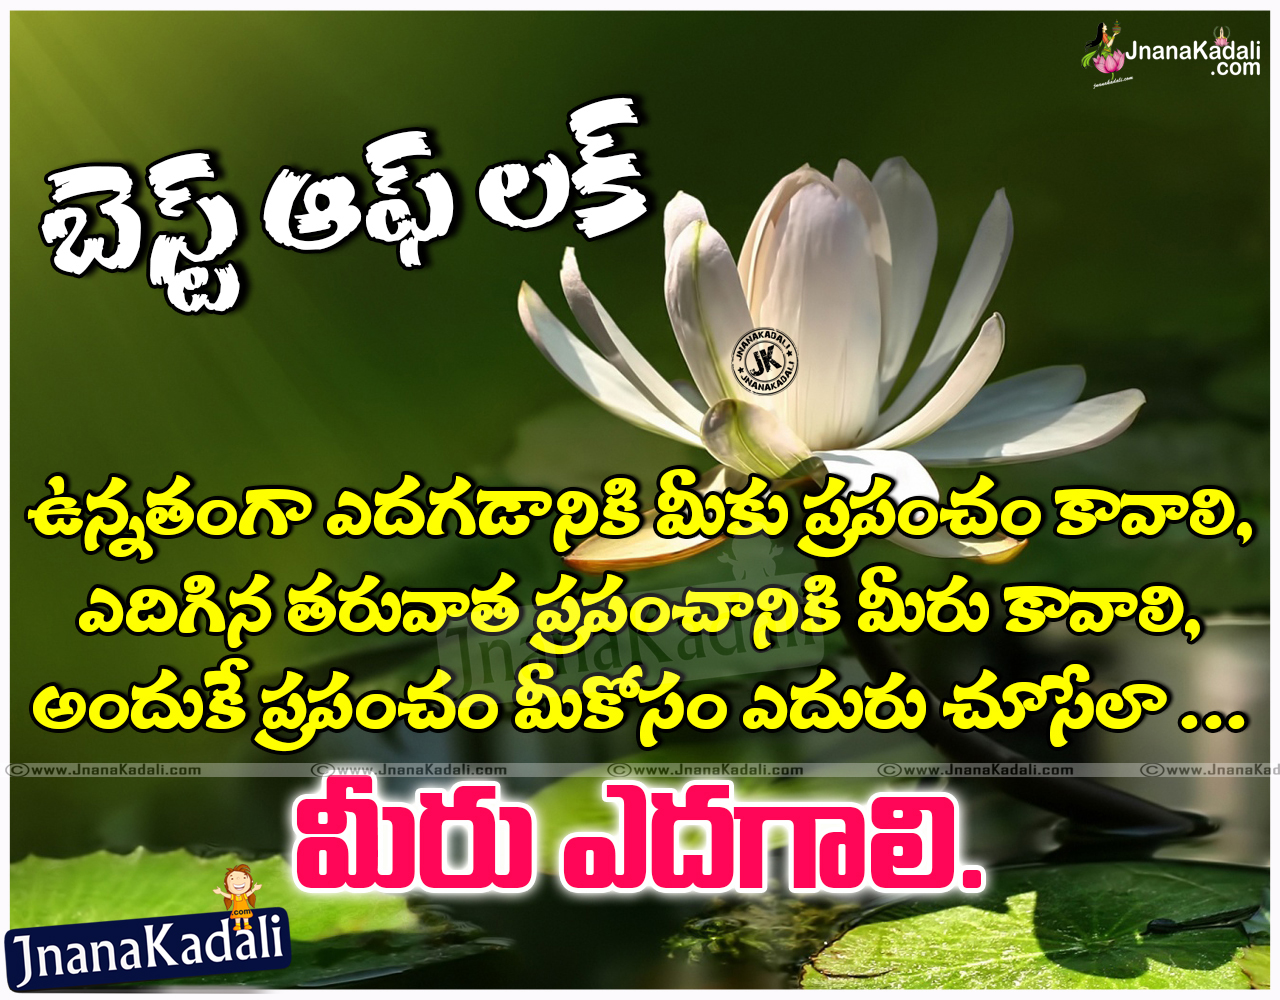 Telugu New All The Best Quotations. Telugu Nice Best Of Luck Quotes In  Telugu Font. Telugu Exam Quotations Online, Best Telugu Students Exams All  The Best ...  Exam Best Wishes Cards